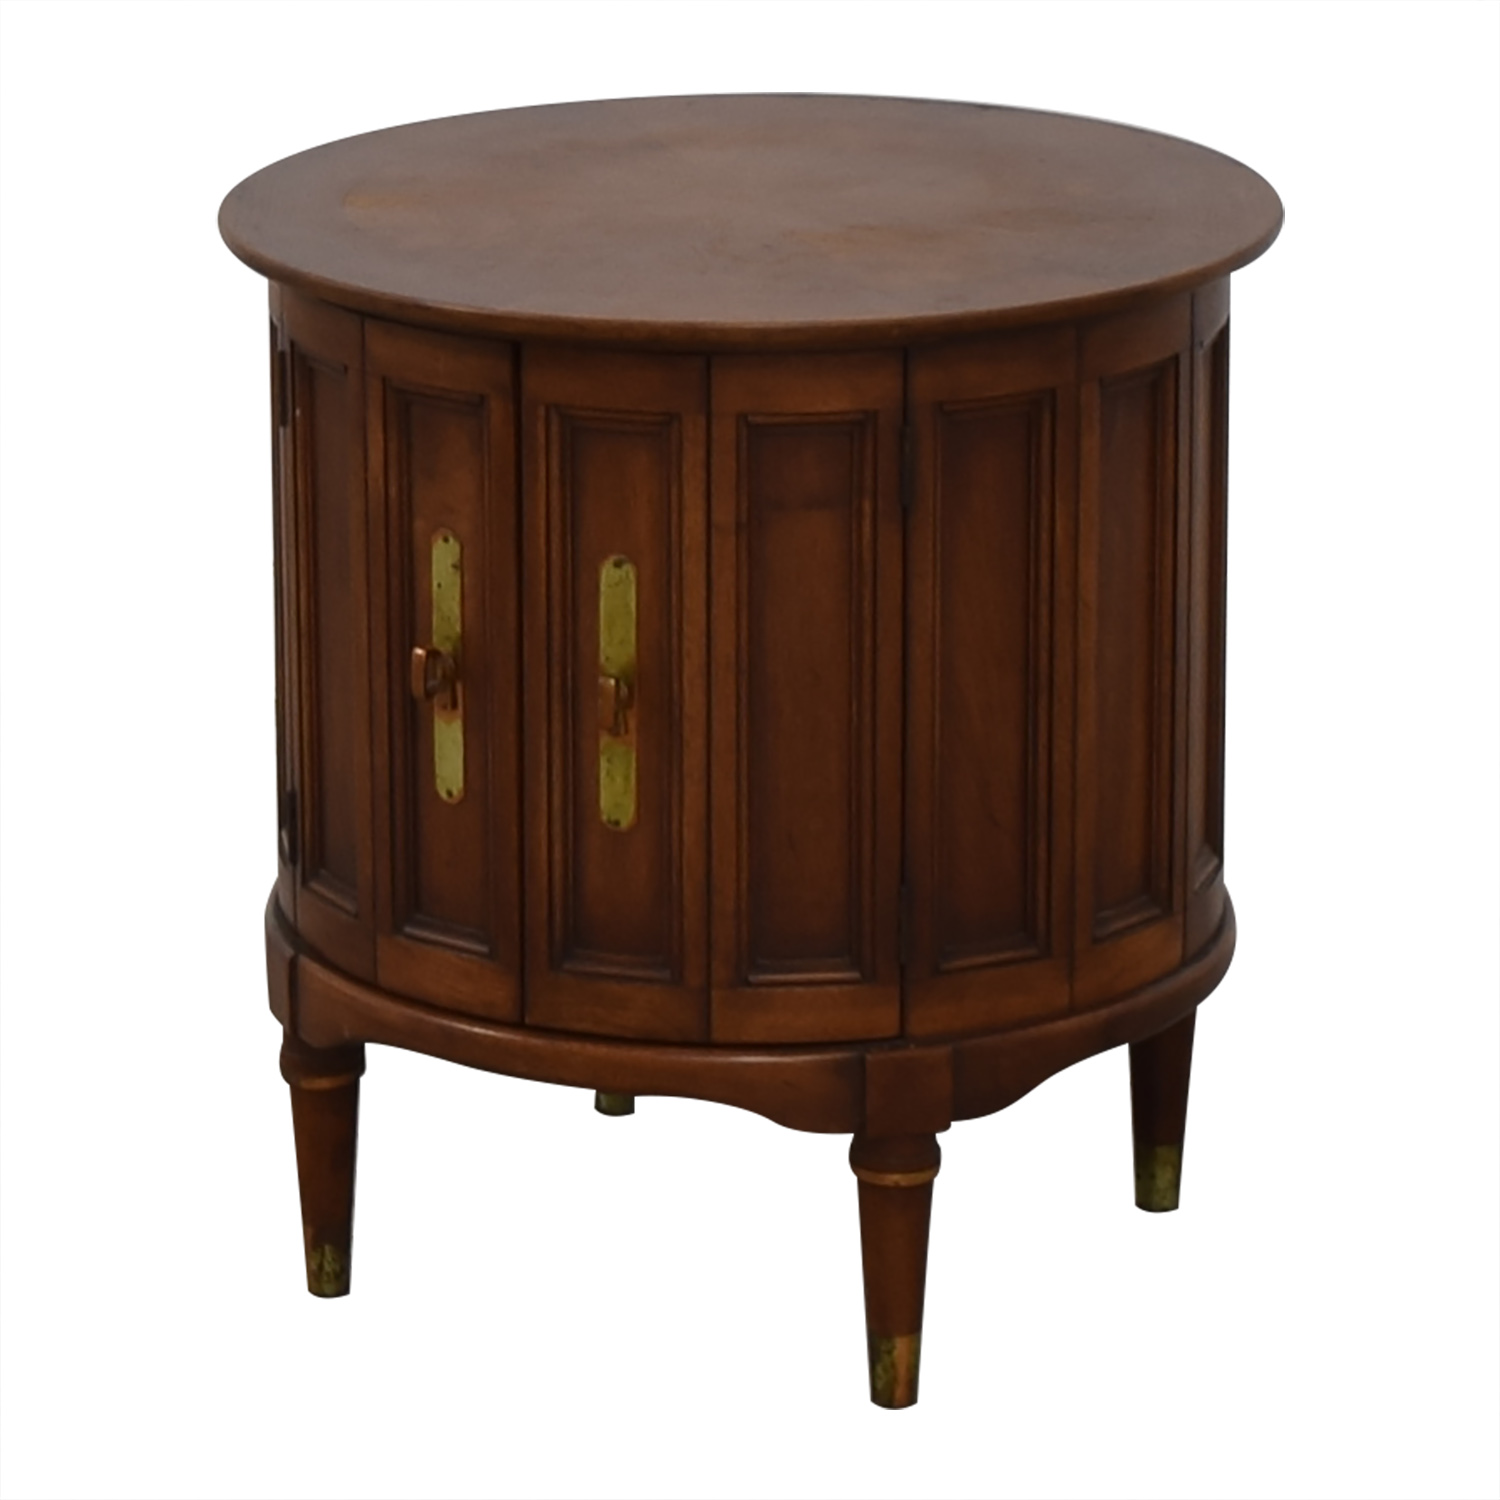 antique round wood end table for sale - Antique End Tables For Sale